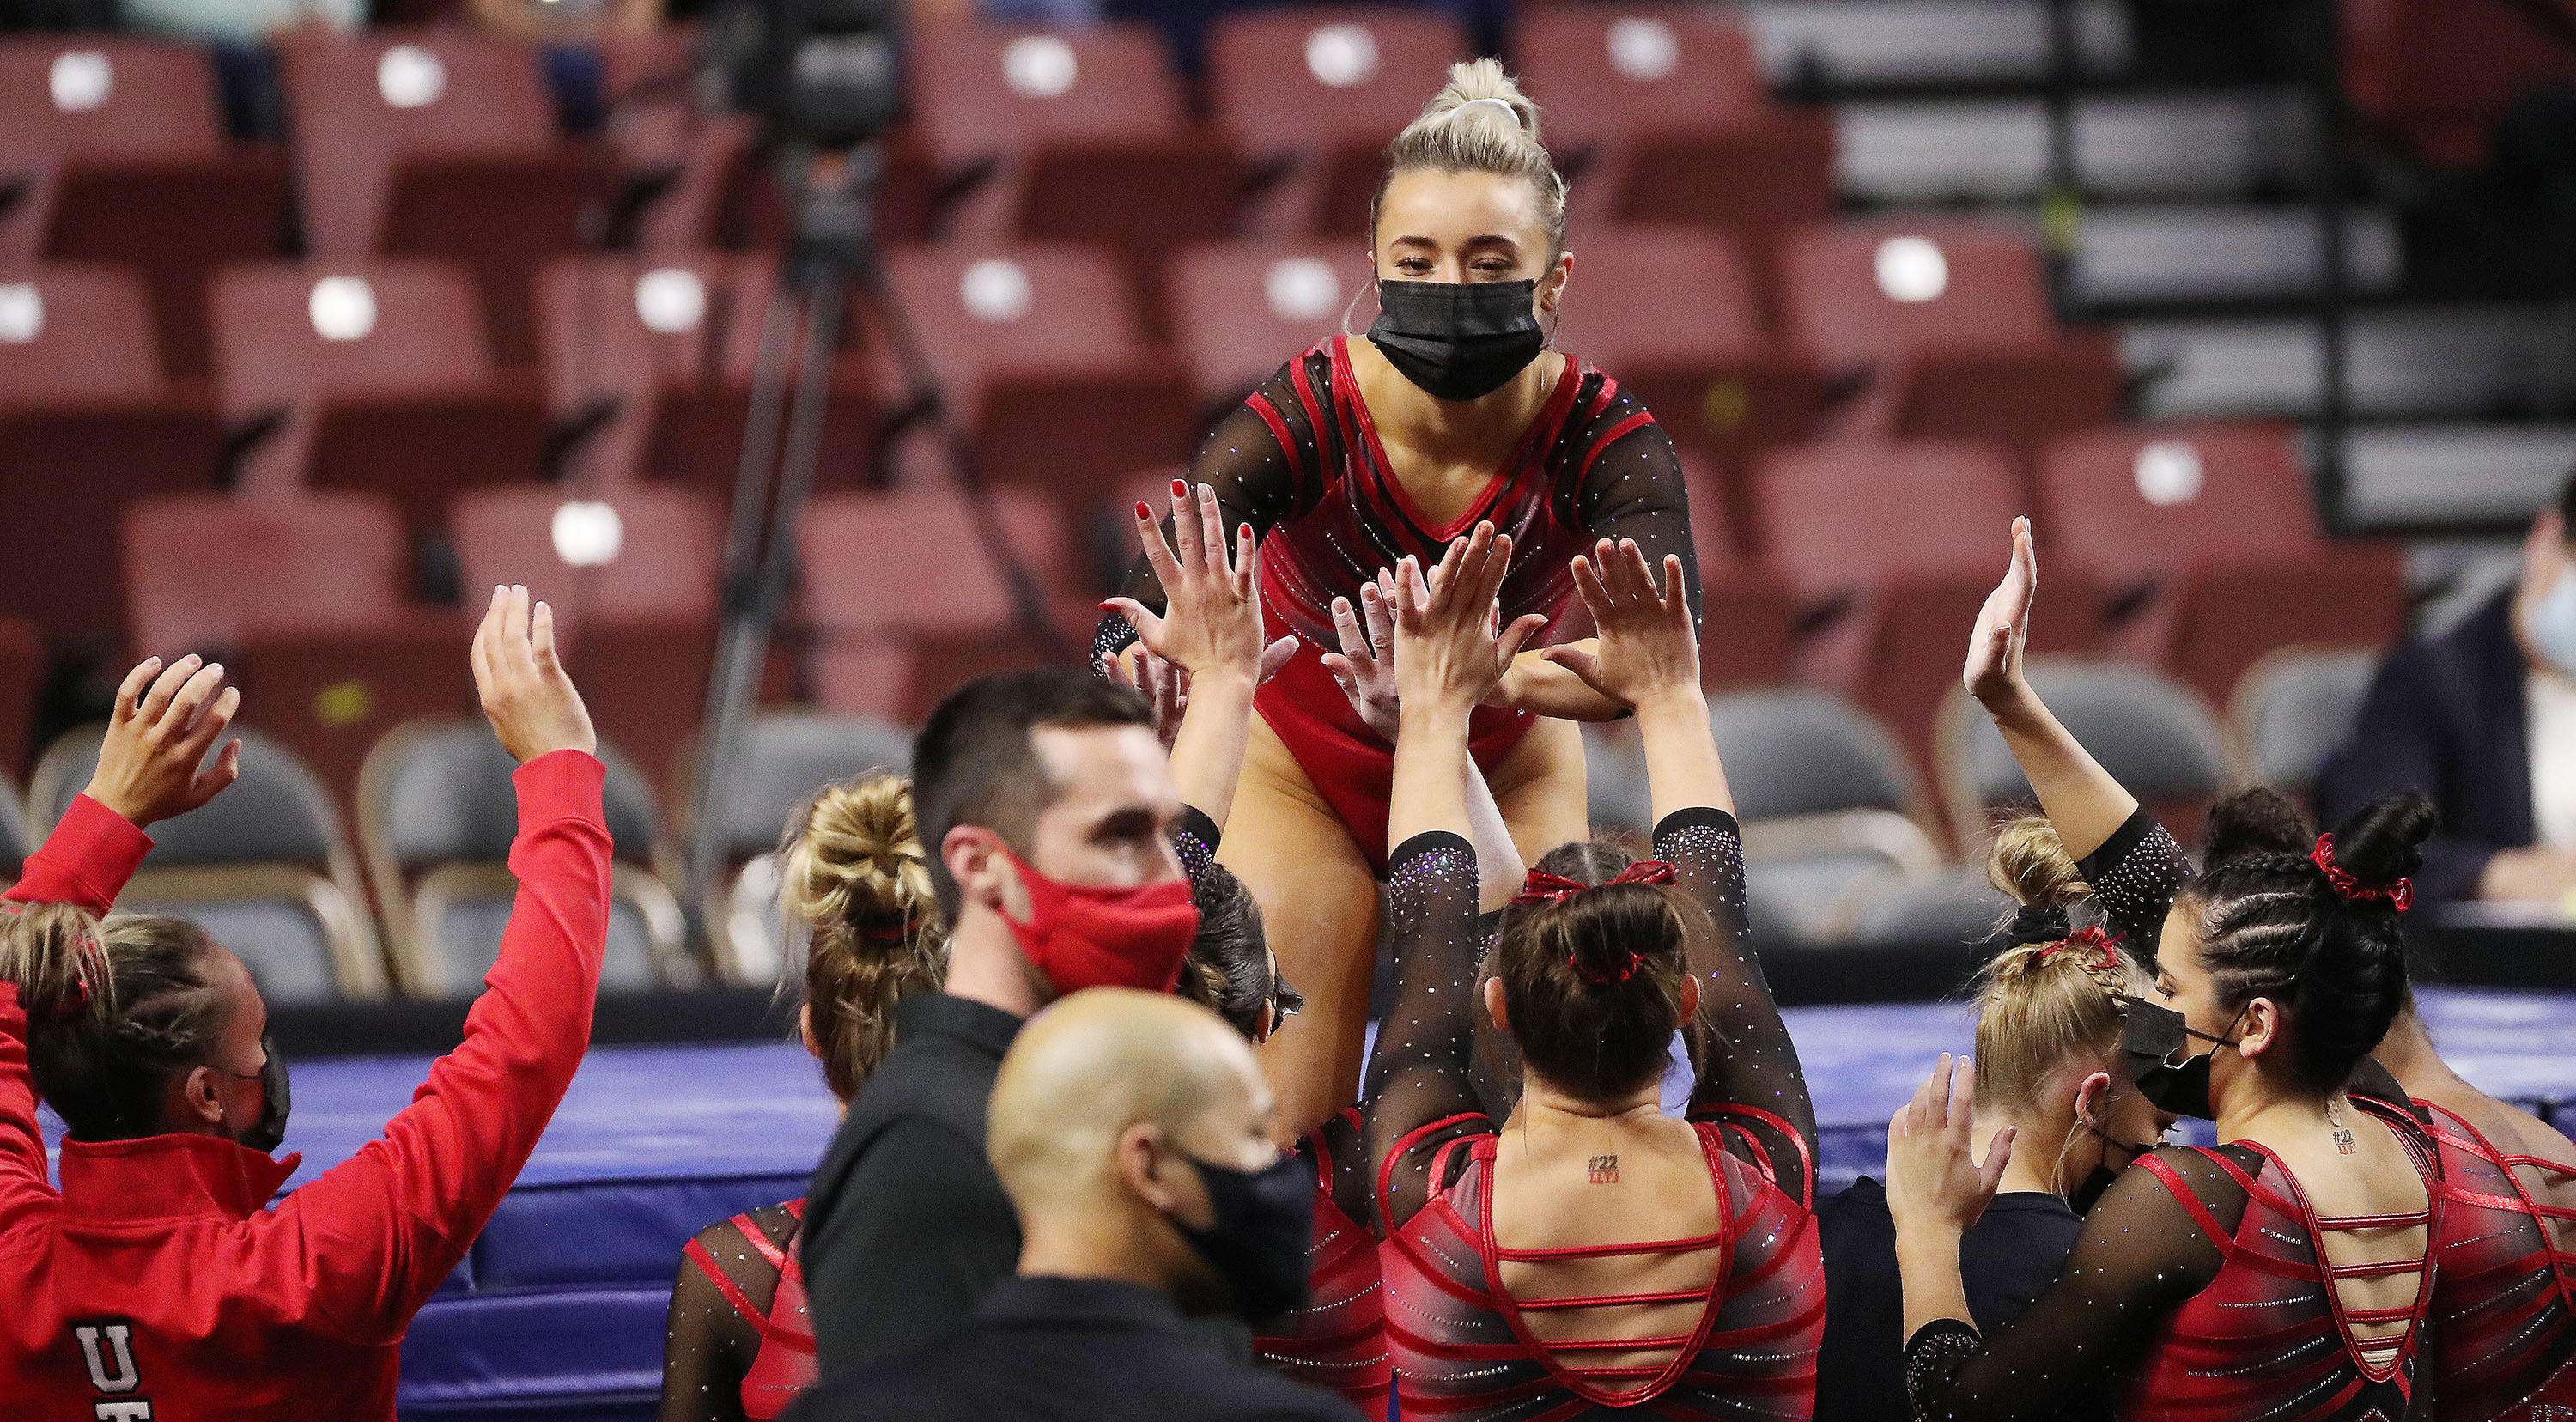 Utah's Abby Paulson reacts with teammates after competing on the beam during the Rio Tinto Best of Utah NCAA gymnastics meet at the Maverik Center in West Valley City on Saturday, Jan. 9, 2021.